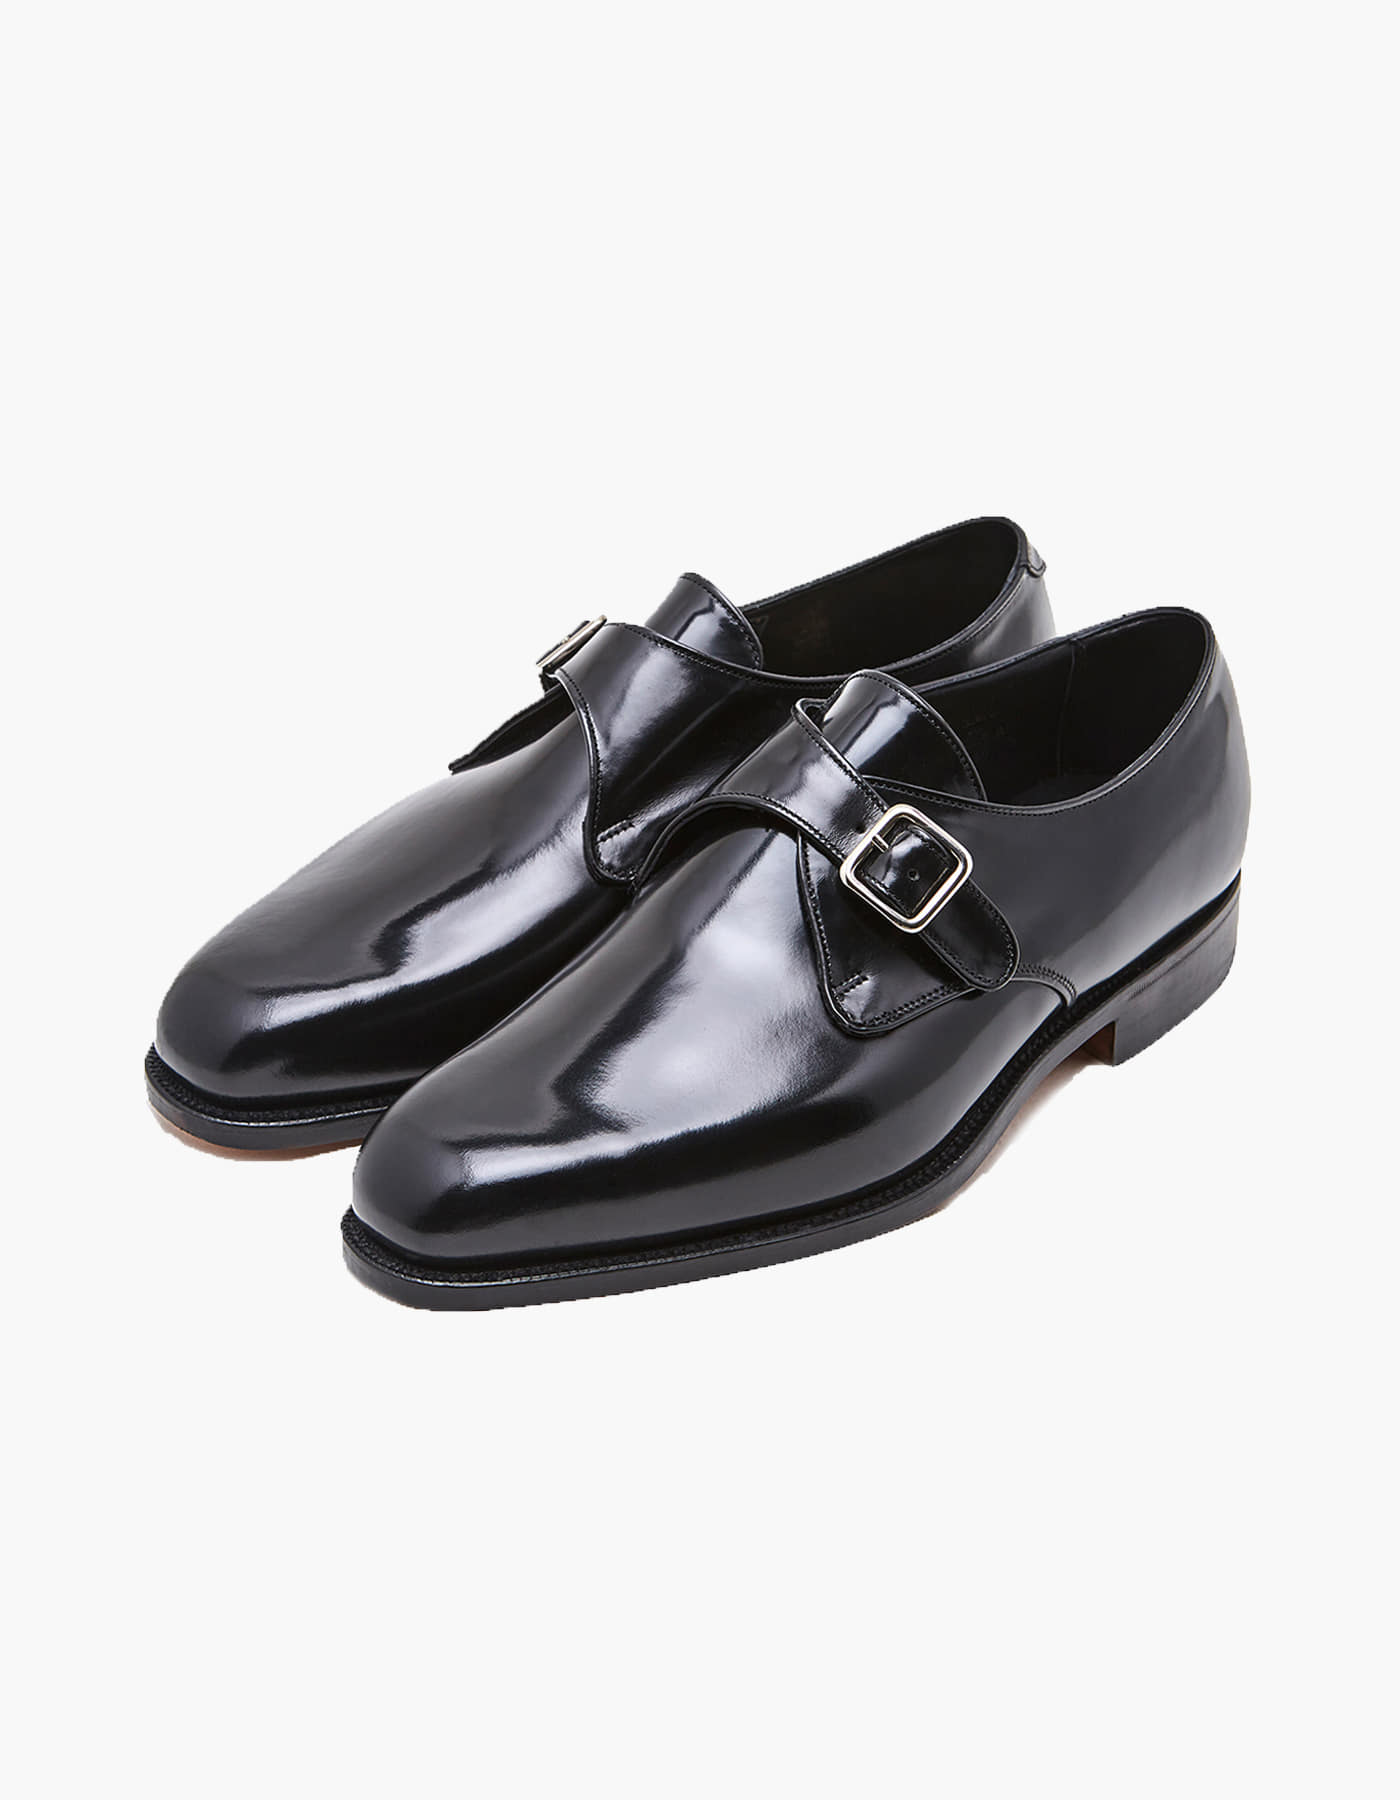 TRICKER'S X HERITAGEFLOSS MAYFAIR (M) / BLACK